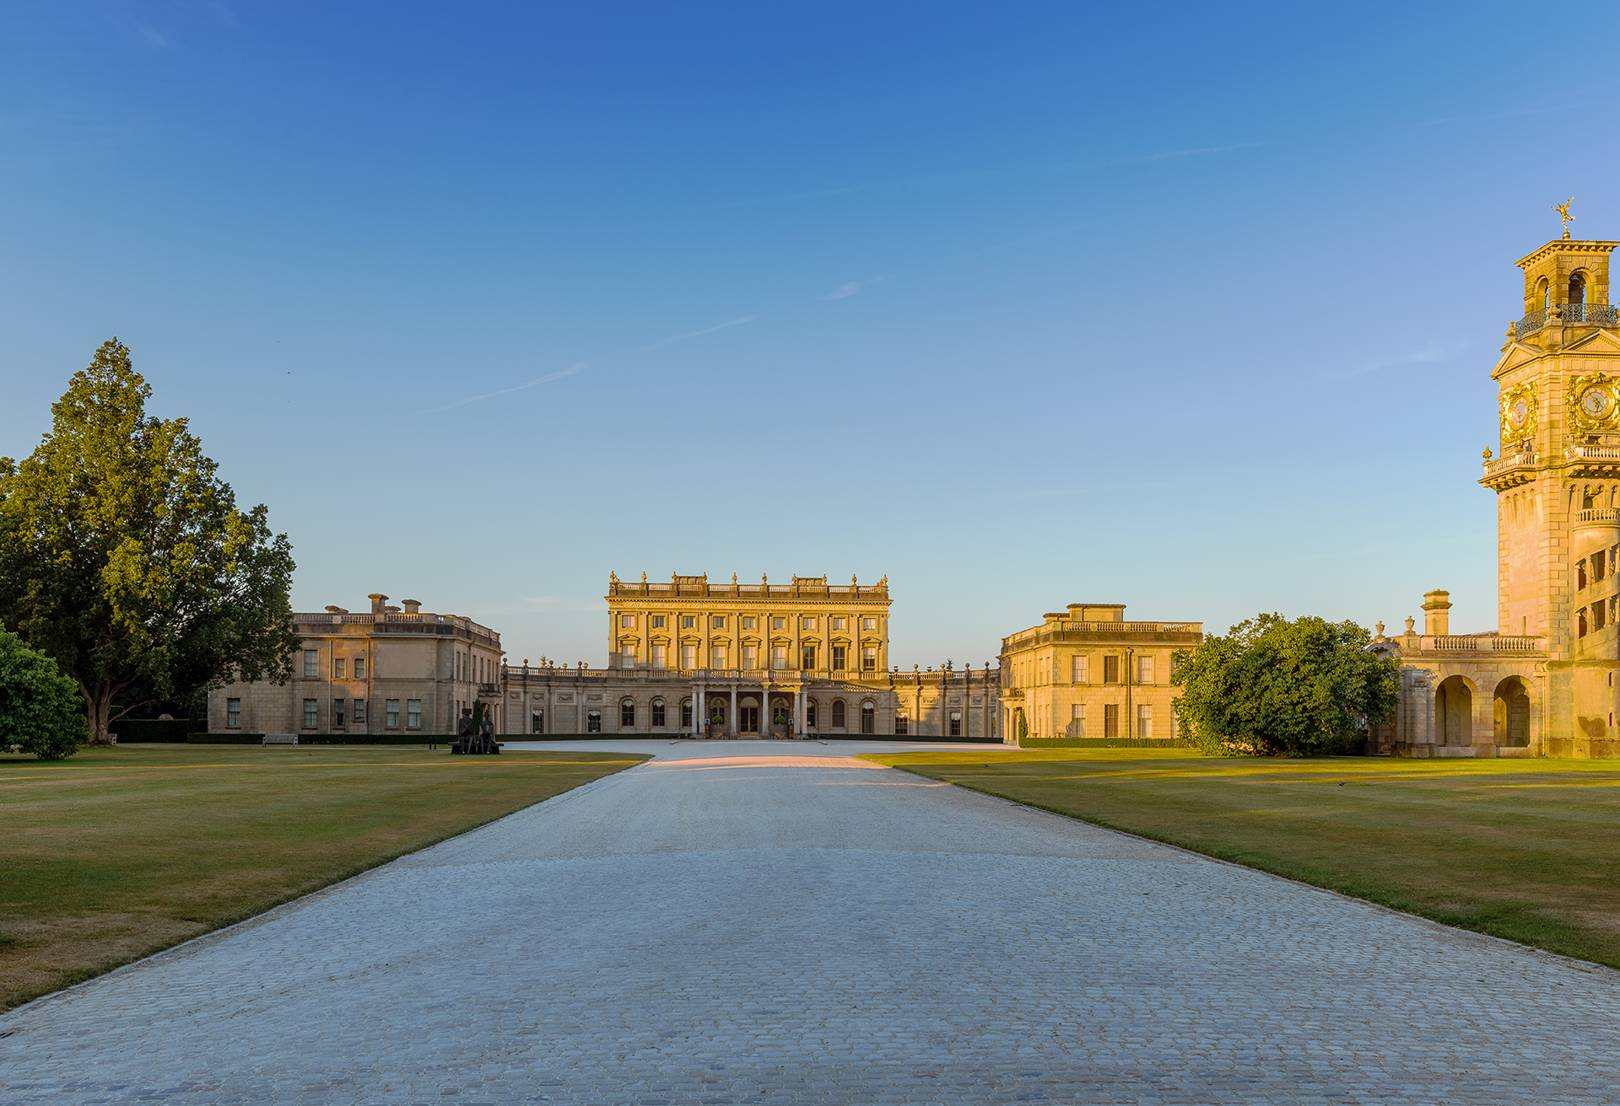 The Cliveden Literary Festival is Glyndebourne for book lovers